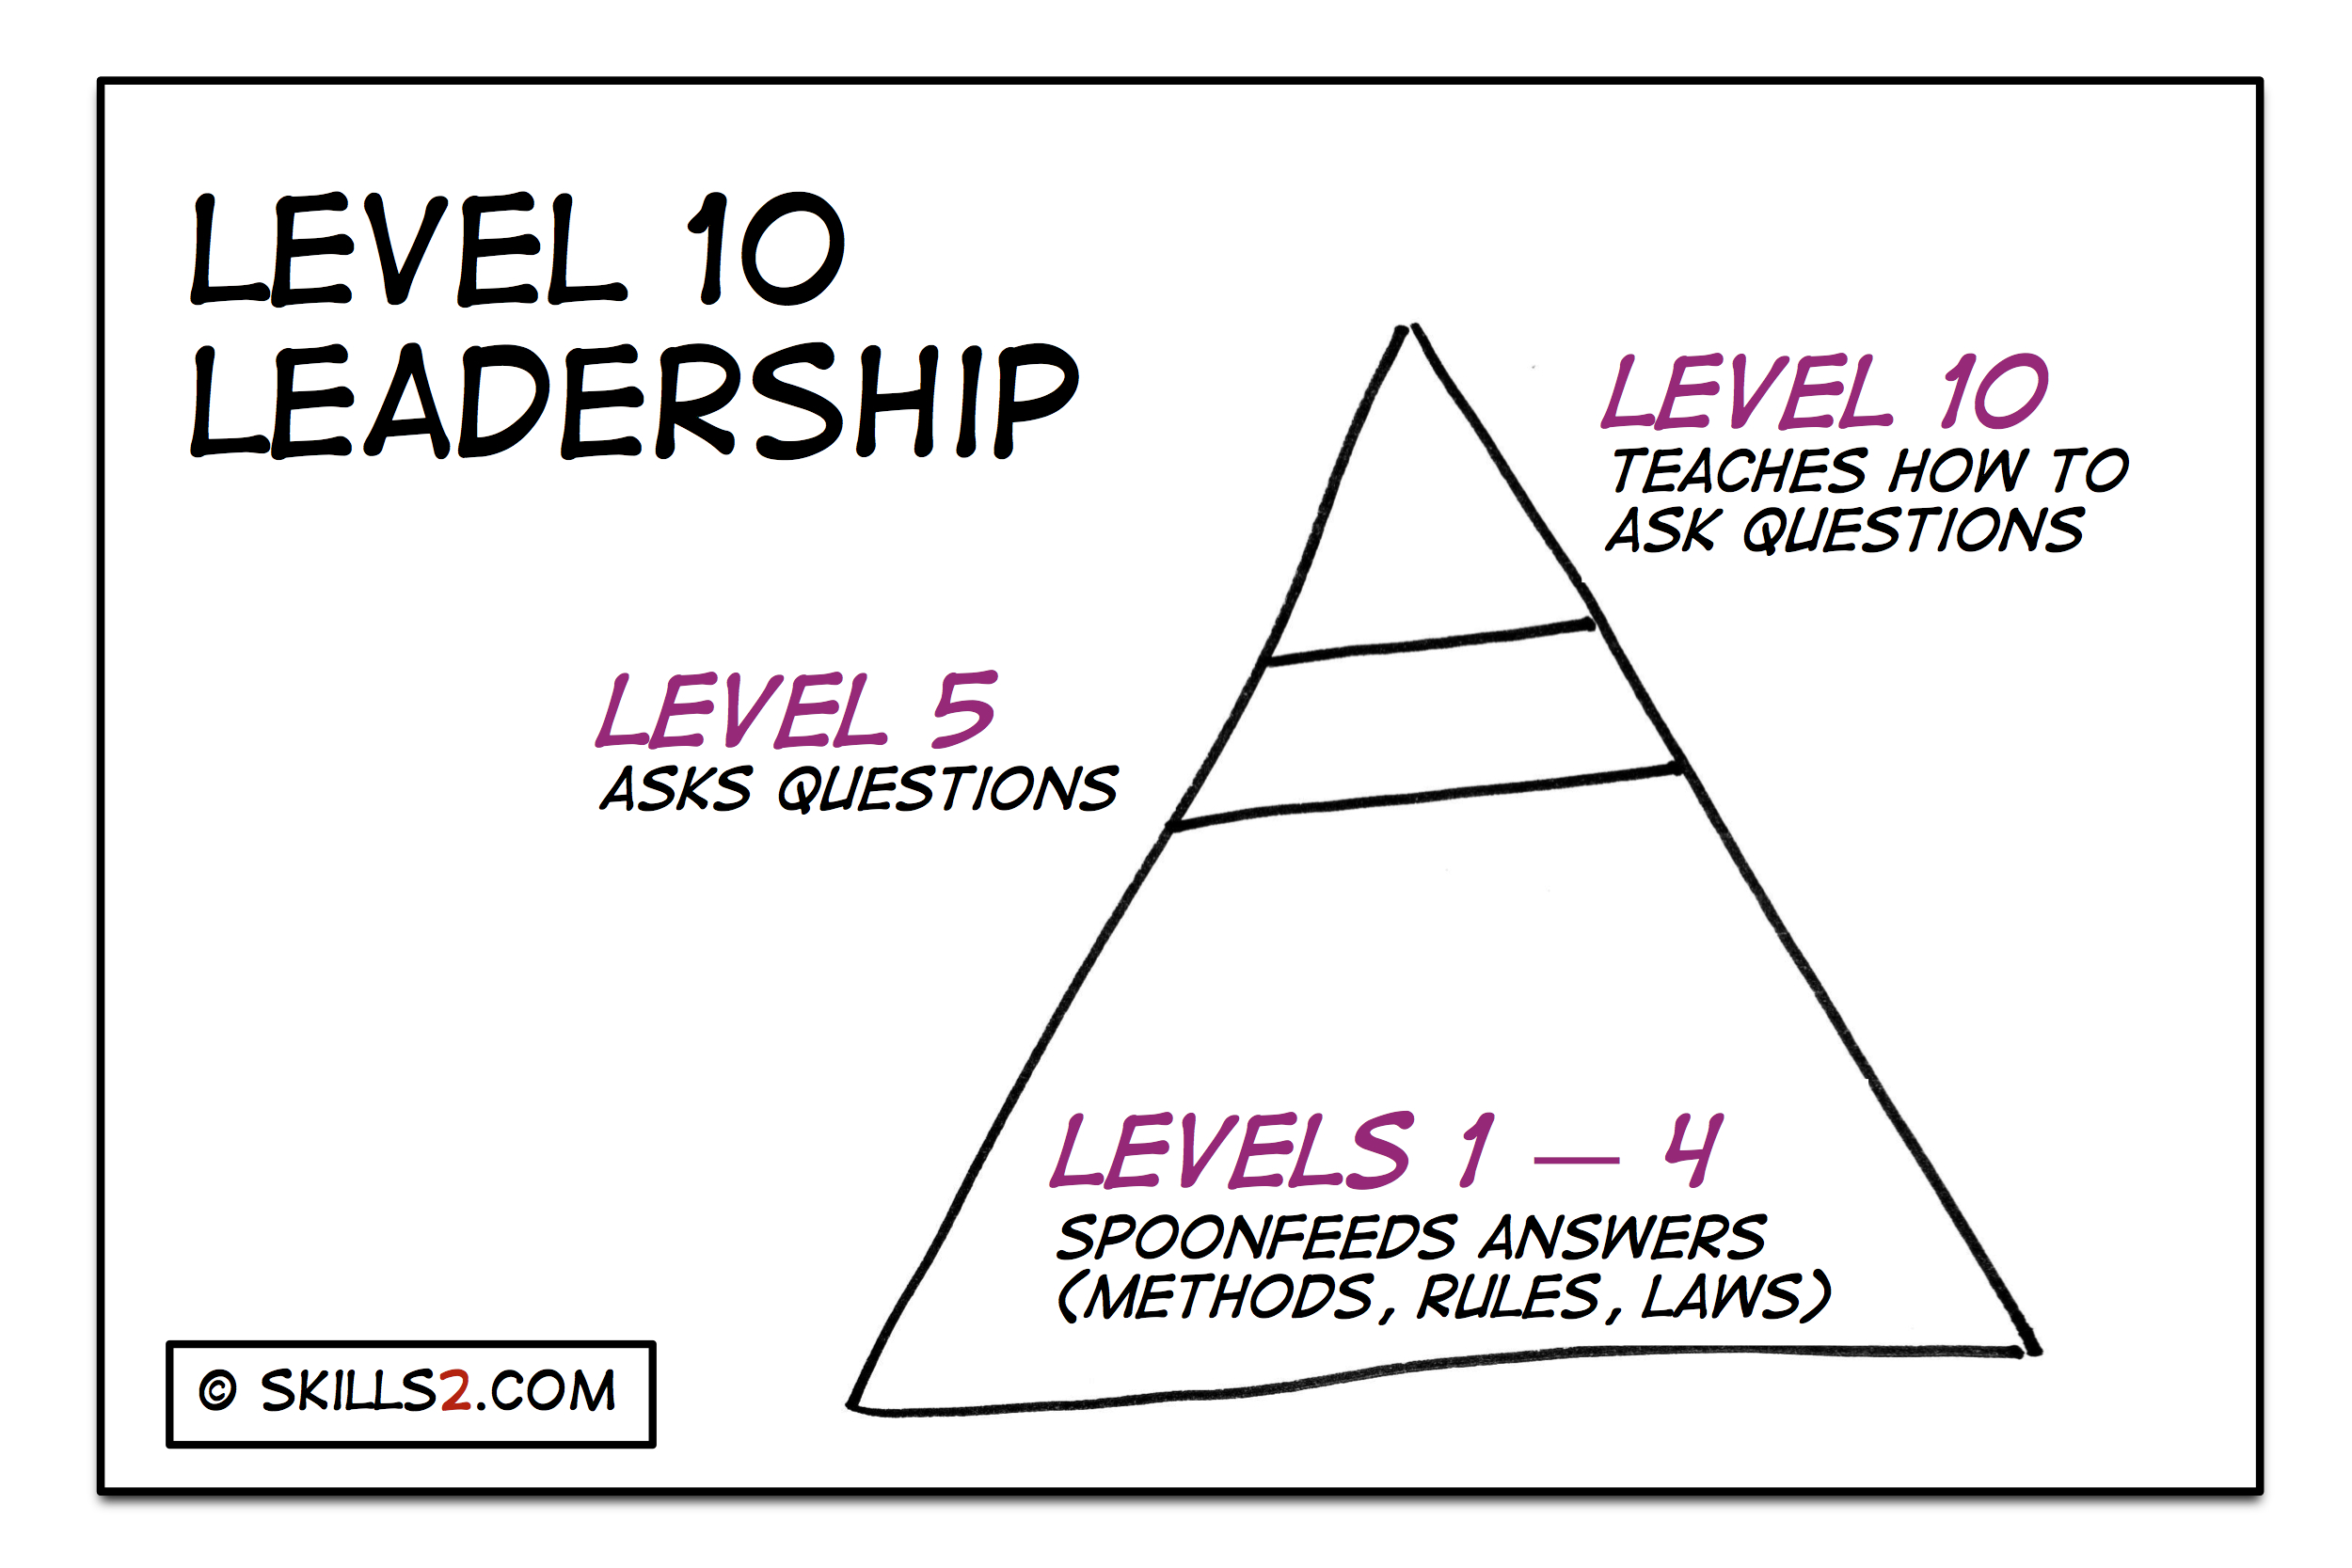 leadership skills 2 0 what level are you as a leader